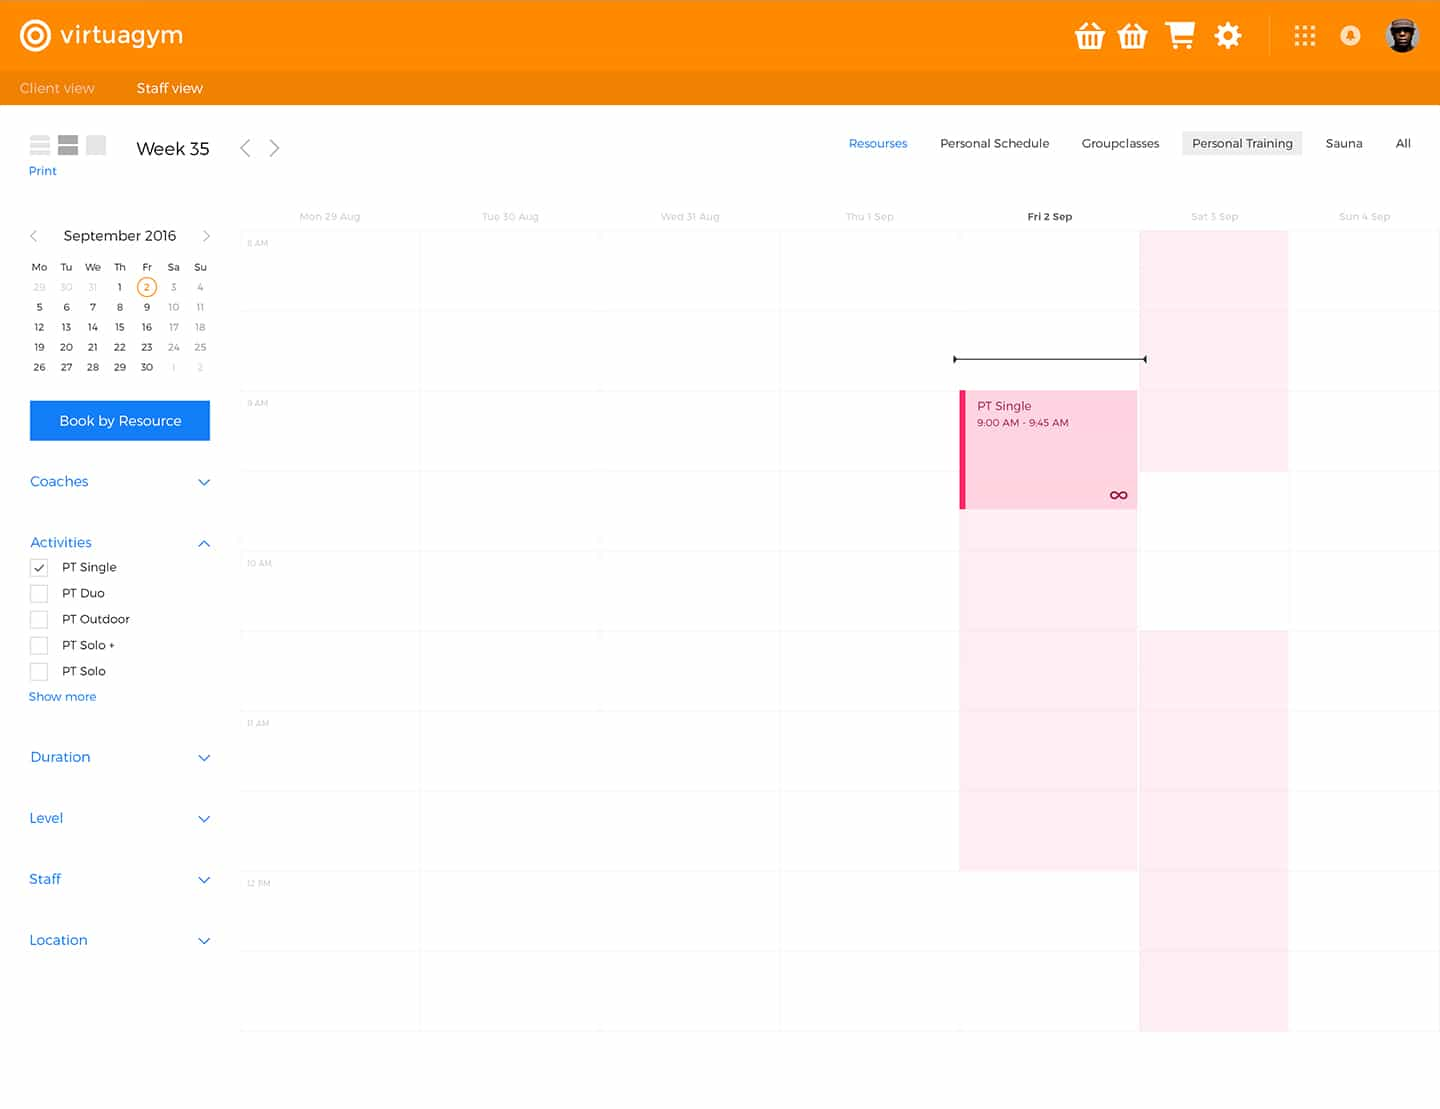 Scheduling Software for Gyms & Personal Trainers | Virtuagym